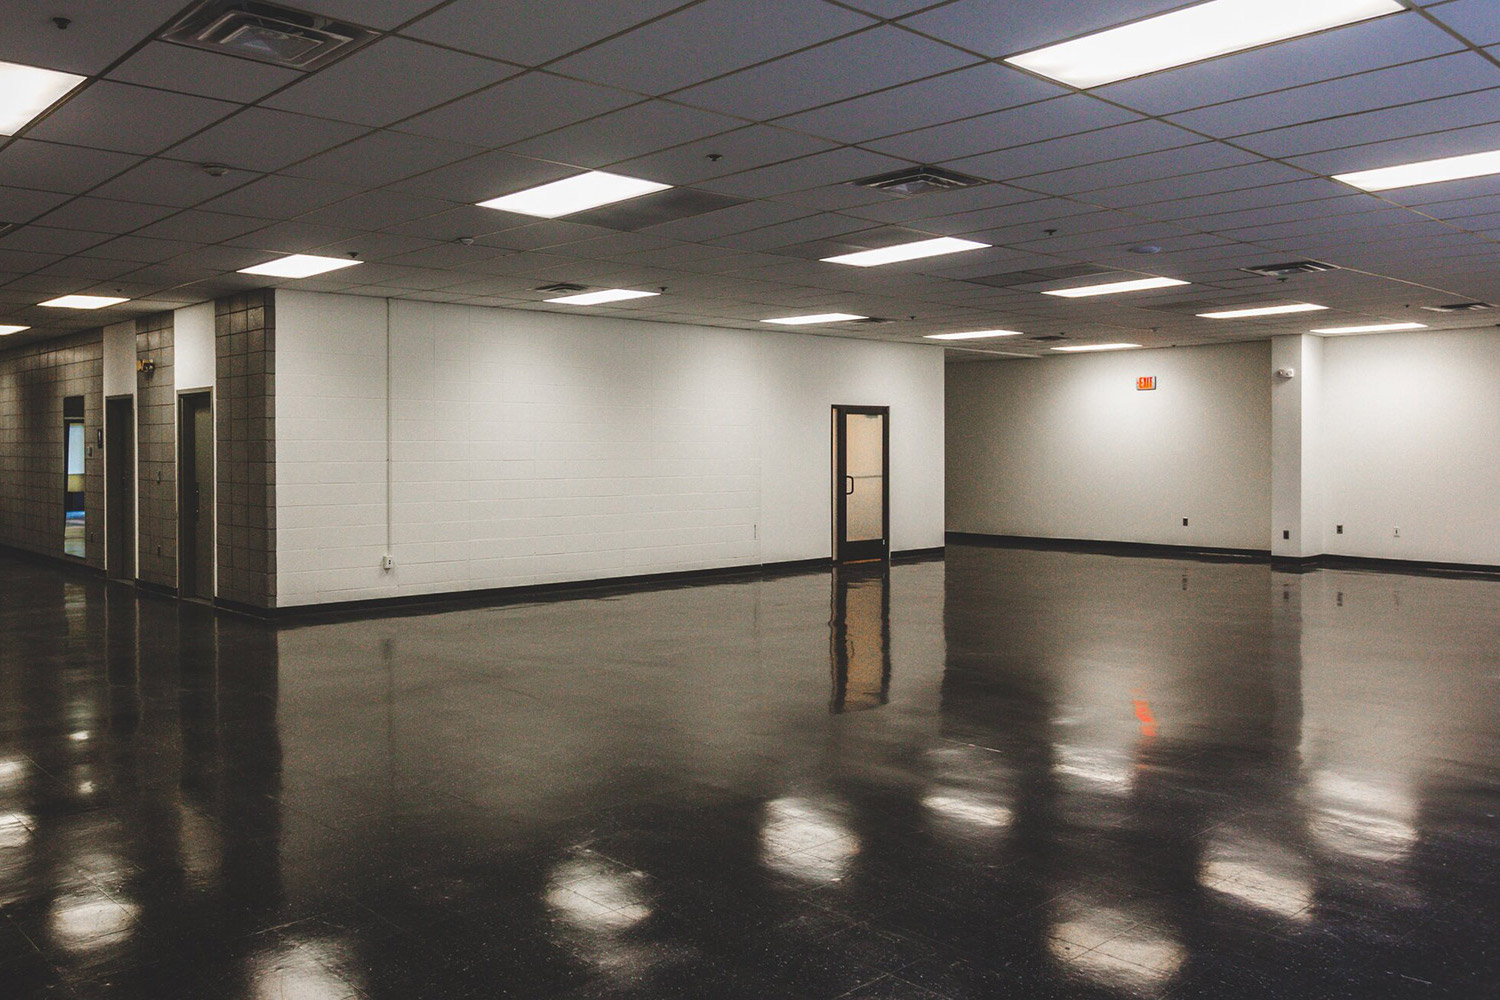 Upriver Studios is a 100,000 ft2 film/TV production facility located in New York owned by Stockade Works. WSDG service were secured to optimize the acoustics of the building and its three sound stages. Flexible space.